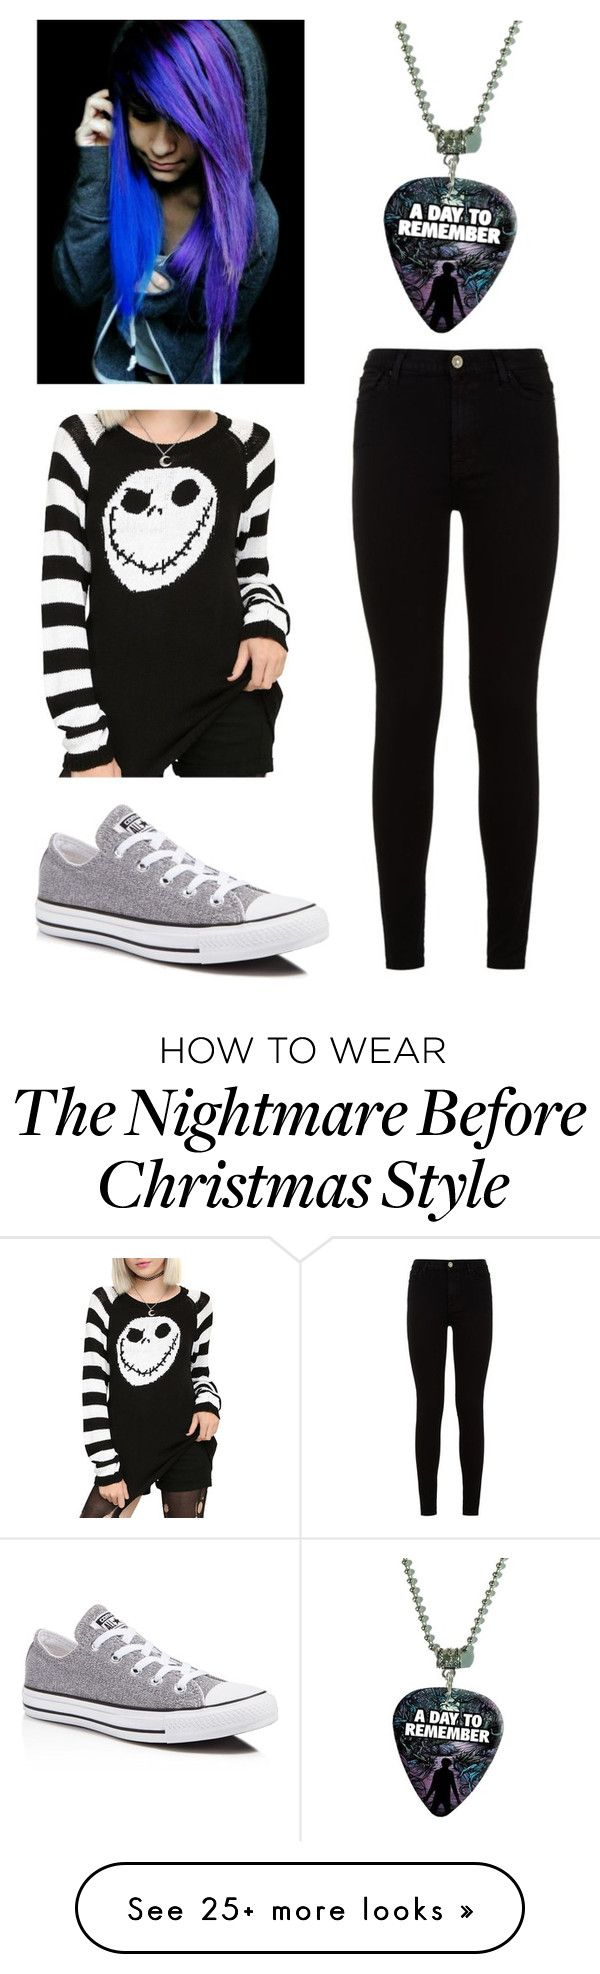 """Untitled #180"" by beannanna on Polyvore featuring 7 For All Mankind and Converse"